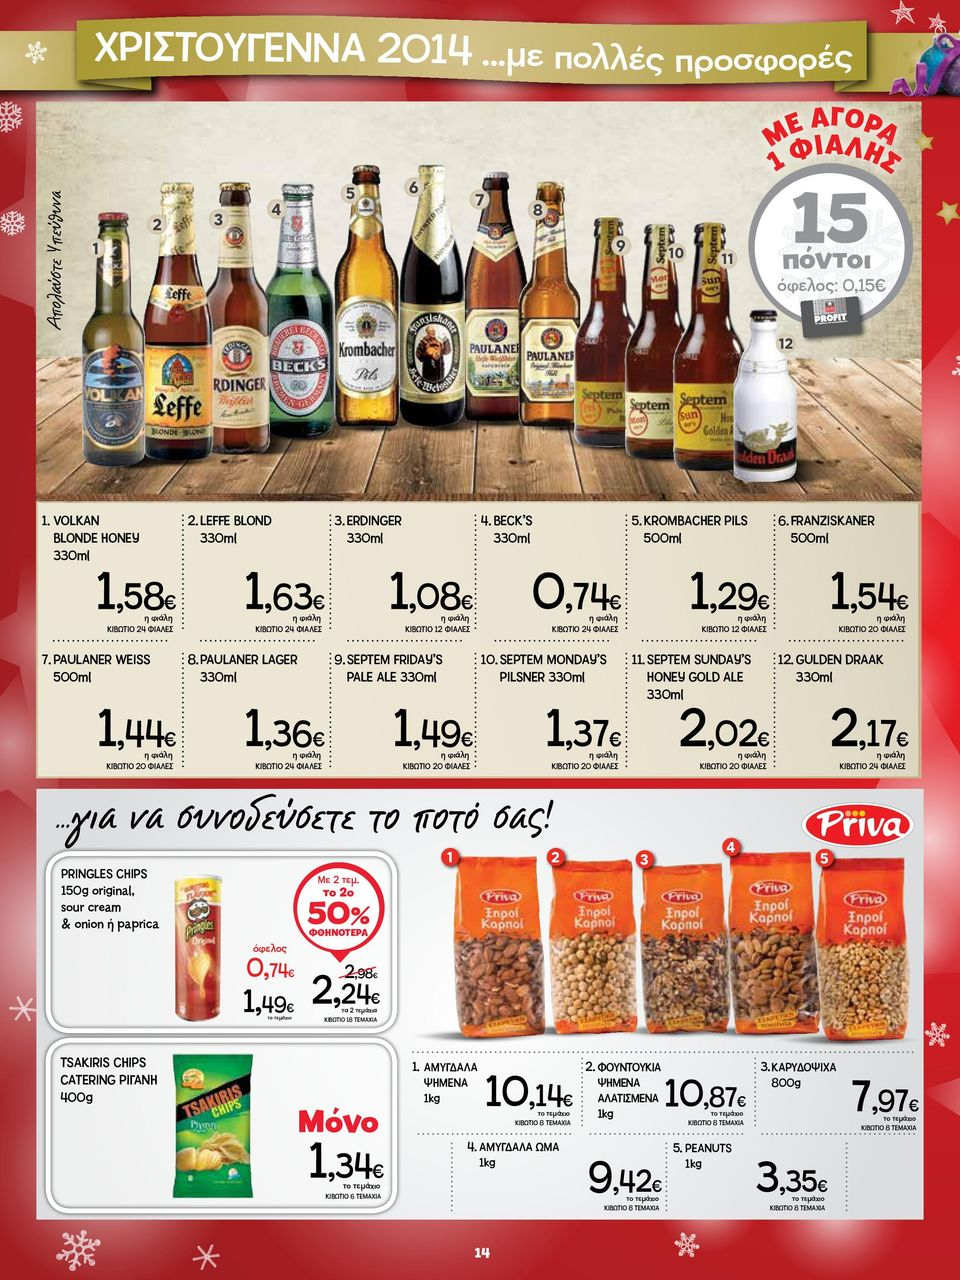 PAULANER WEISS 500ml 8. PAULANER LAGER 330ml 9. SEPTEM FRIDAY S PALE ALE 330ml 10. SEPTEM MONDAY S PILSNER 330ml 11. SEPTEM SUNDAY S HONEY GOLD ΑLE 330ml 12.